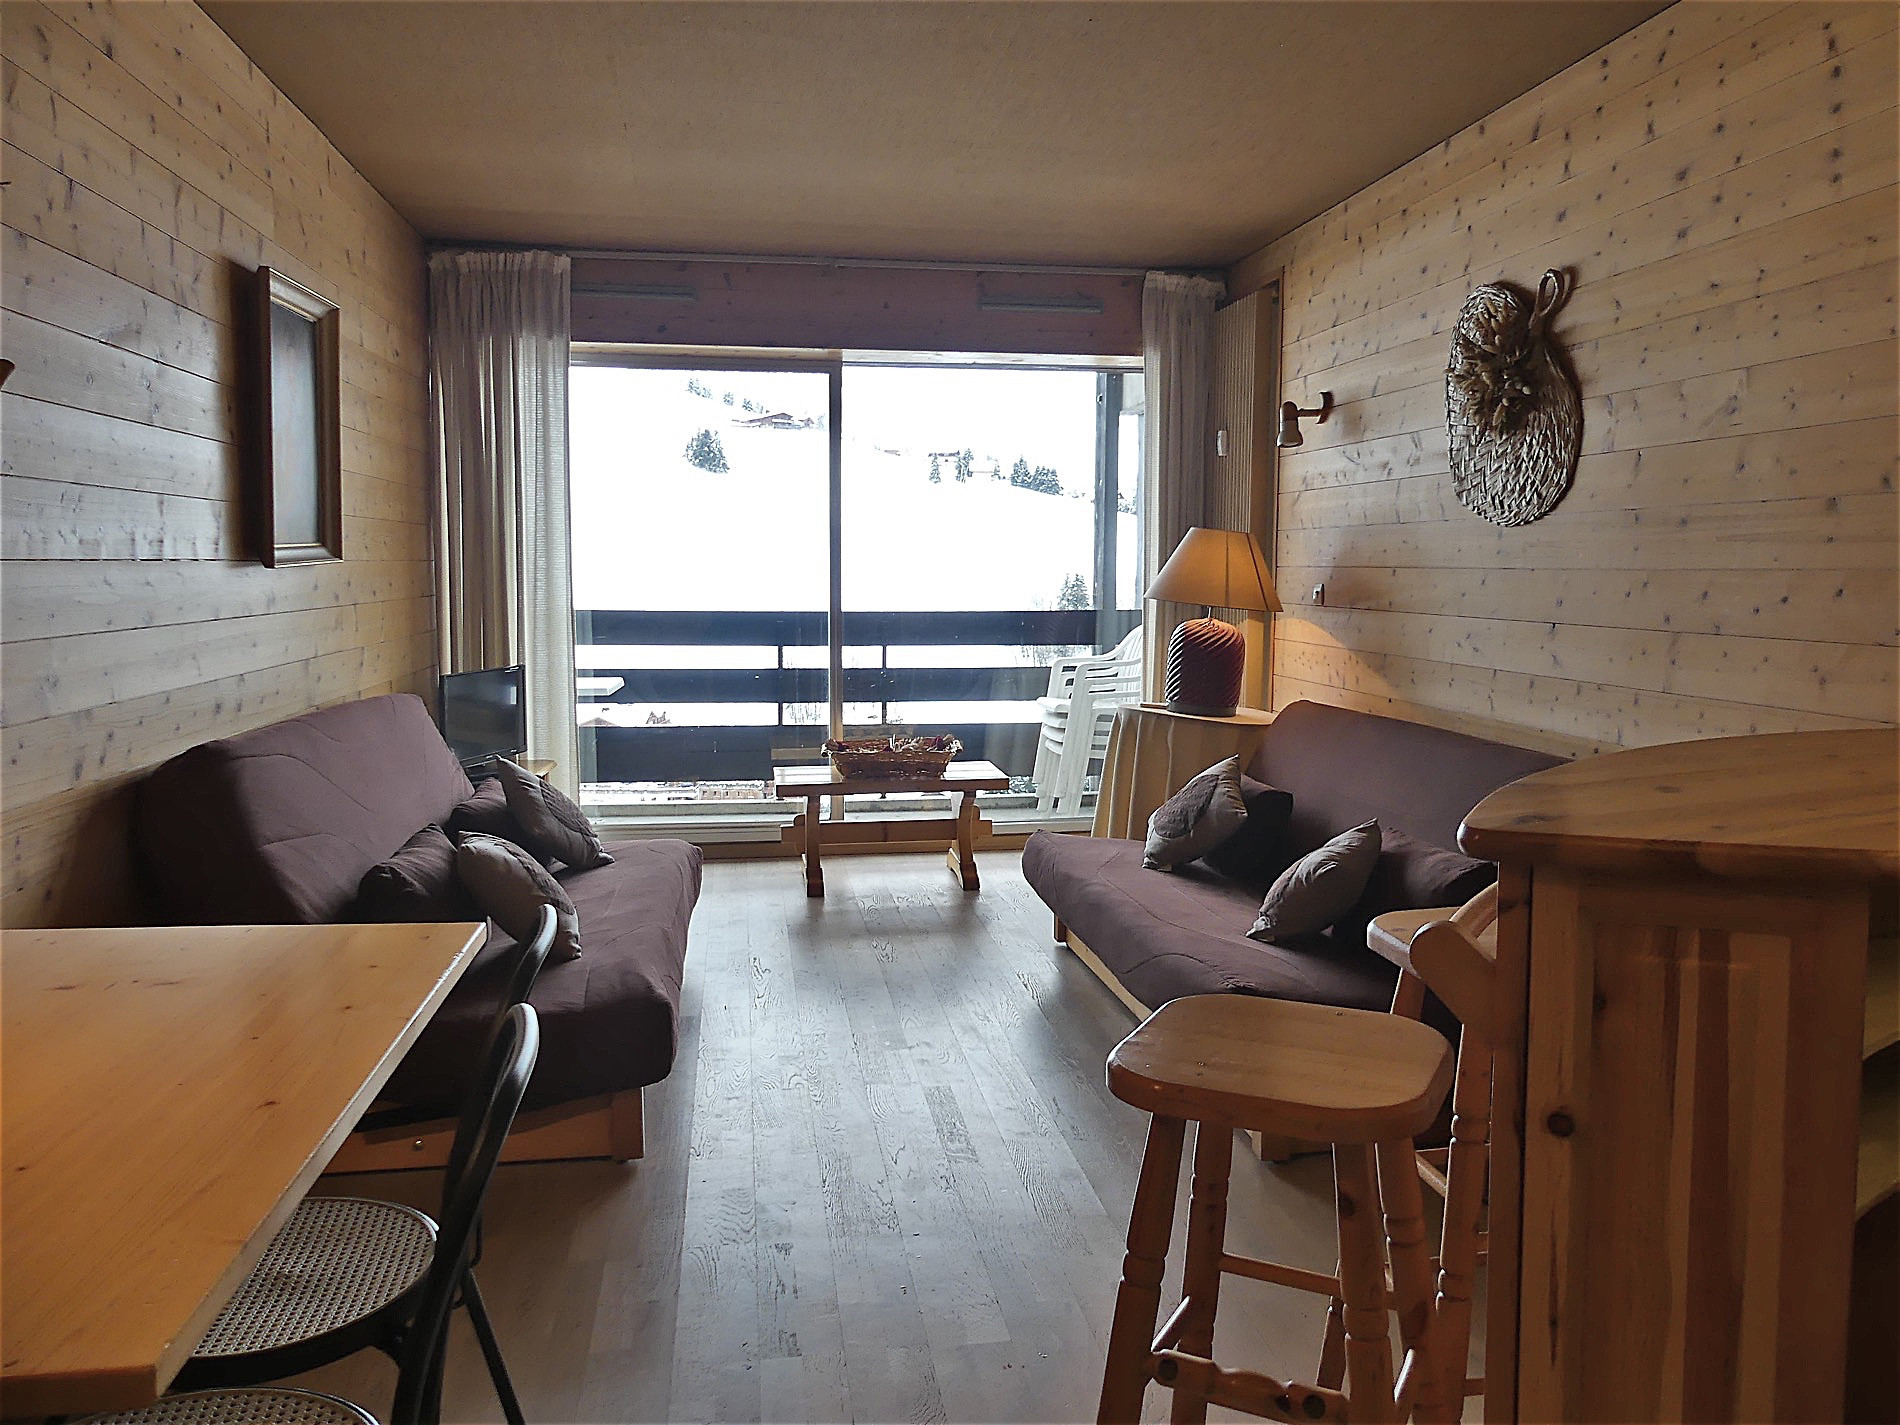 in La Clusaz - Aiguille Verte 27 - Flat for 4 people, nice view